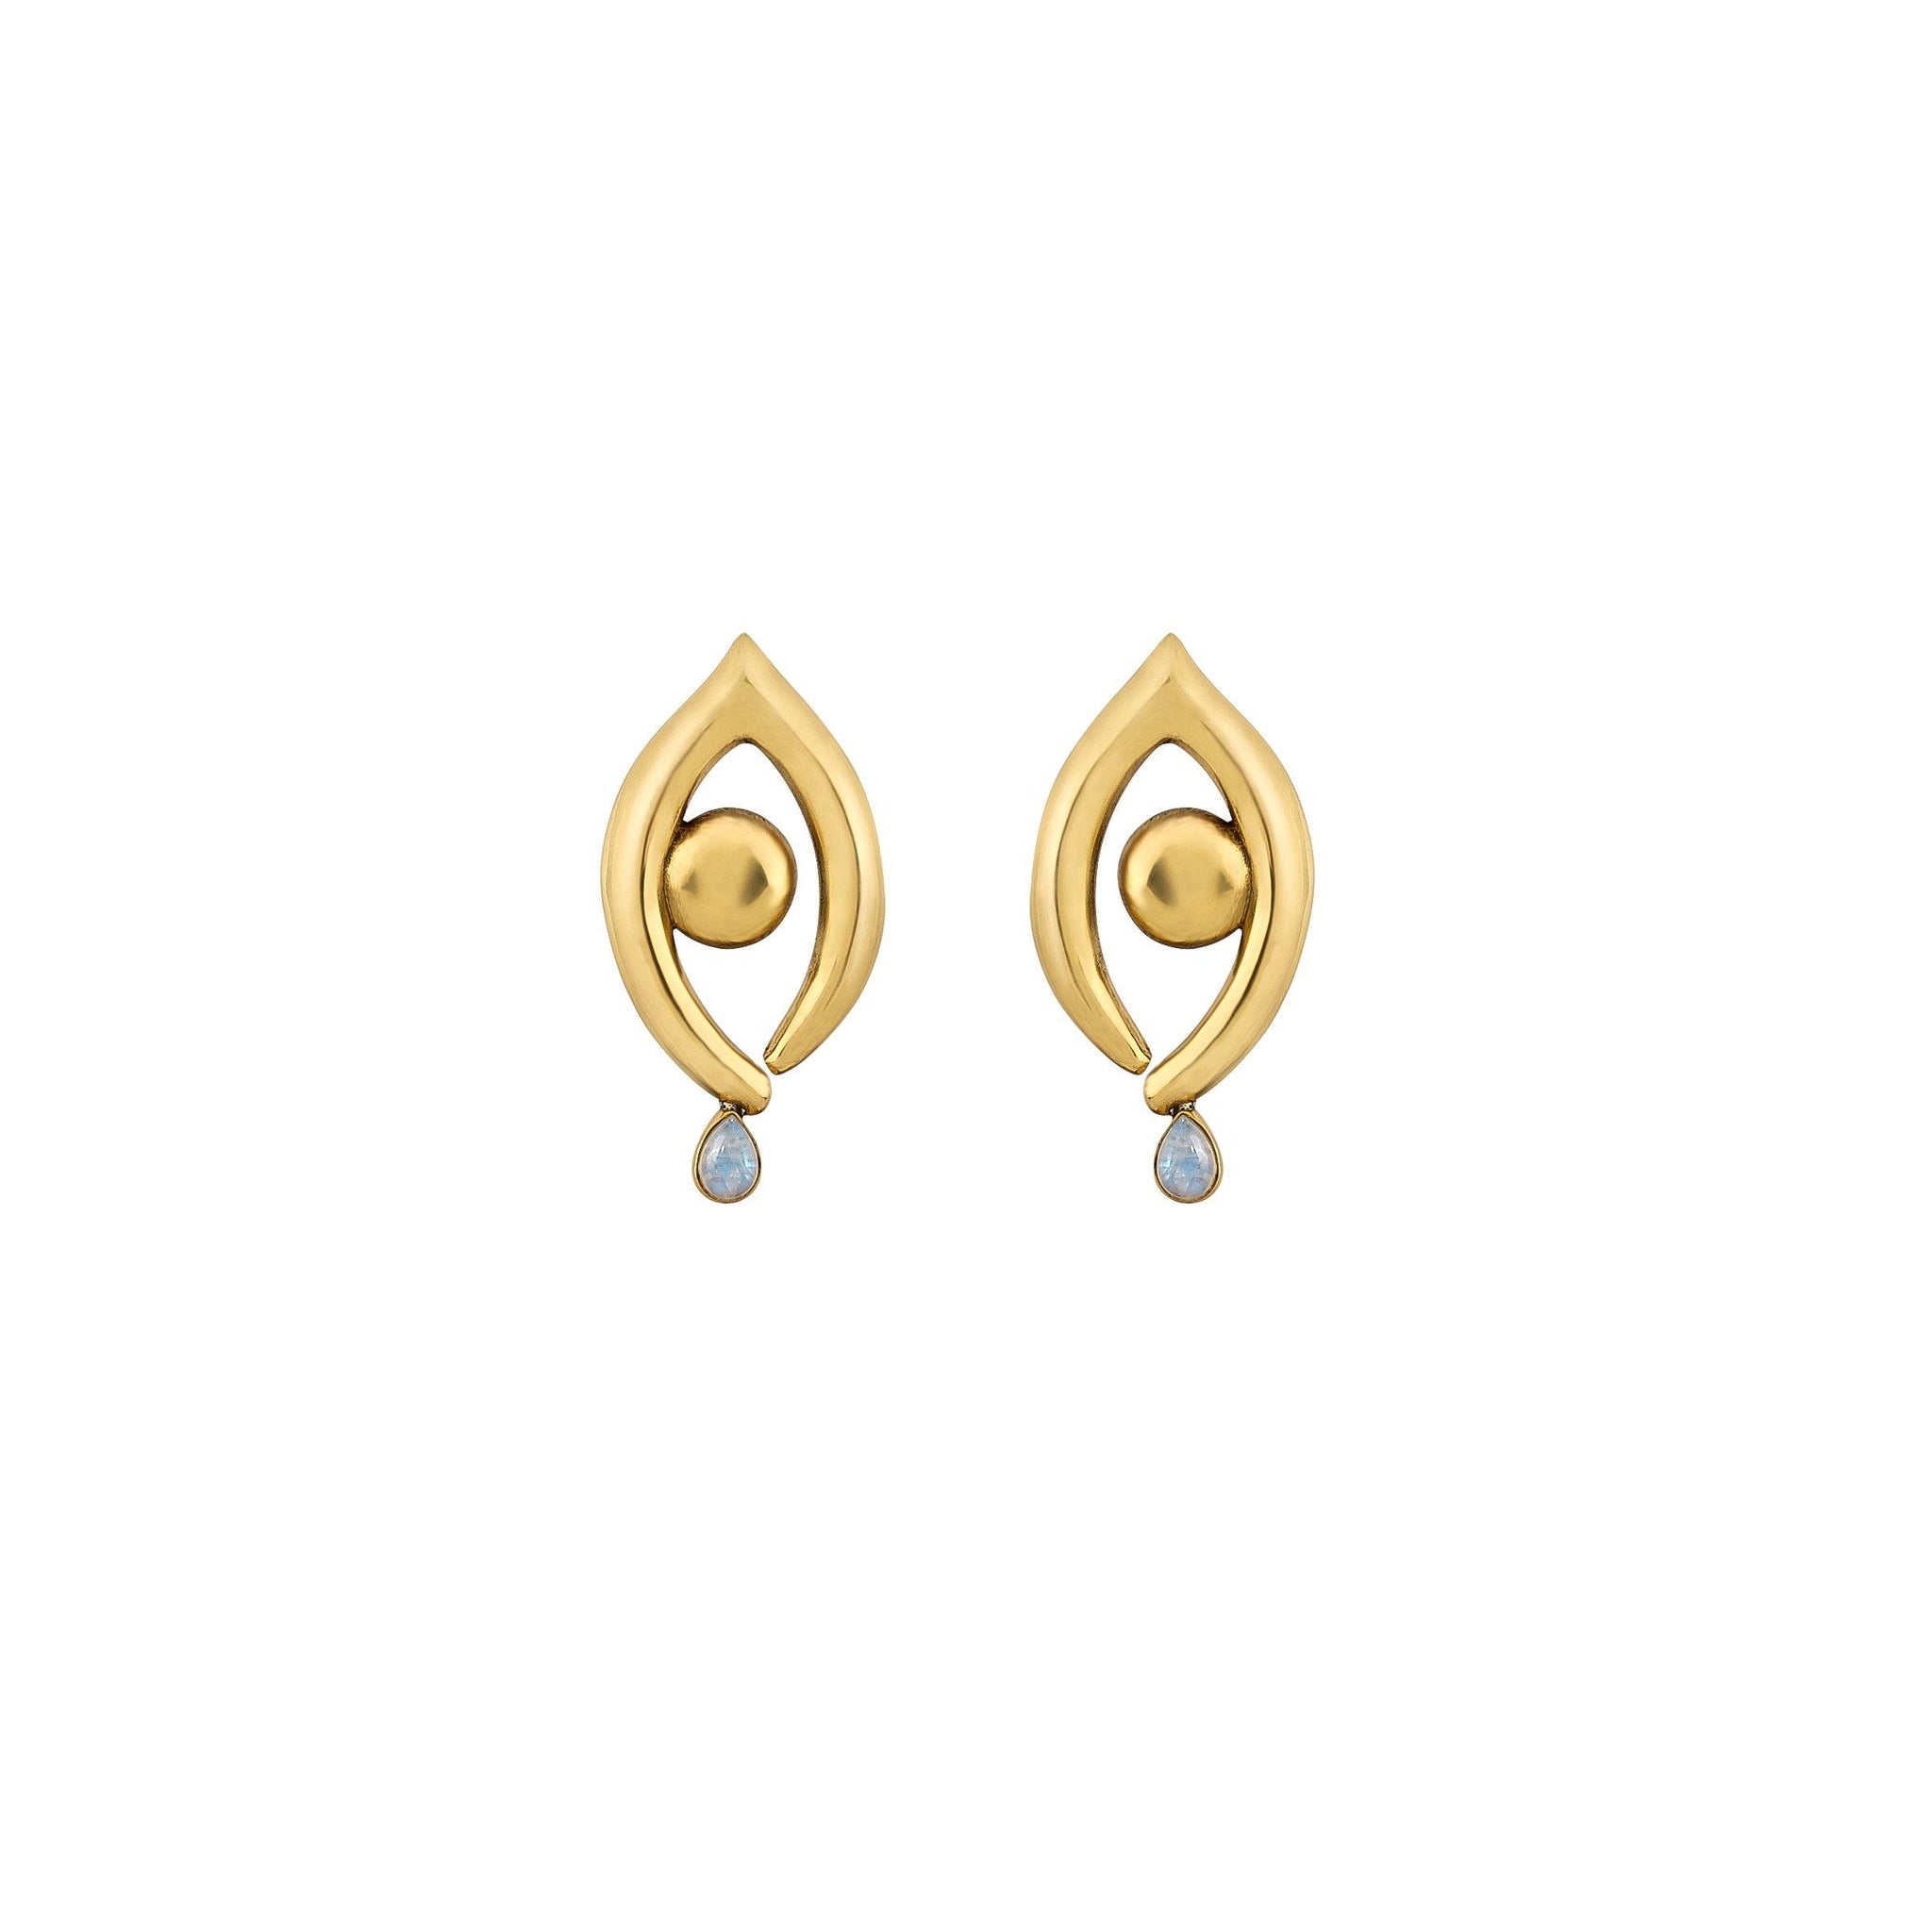 Iris Earrings - Kasha Bali